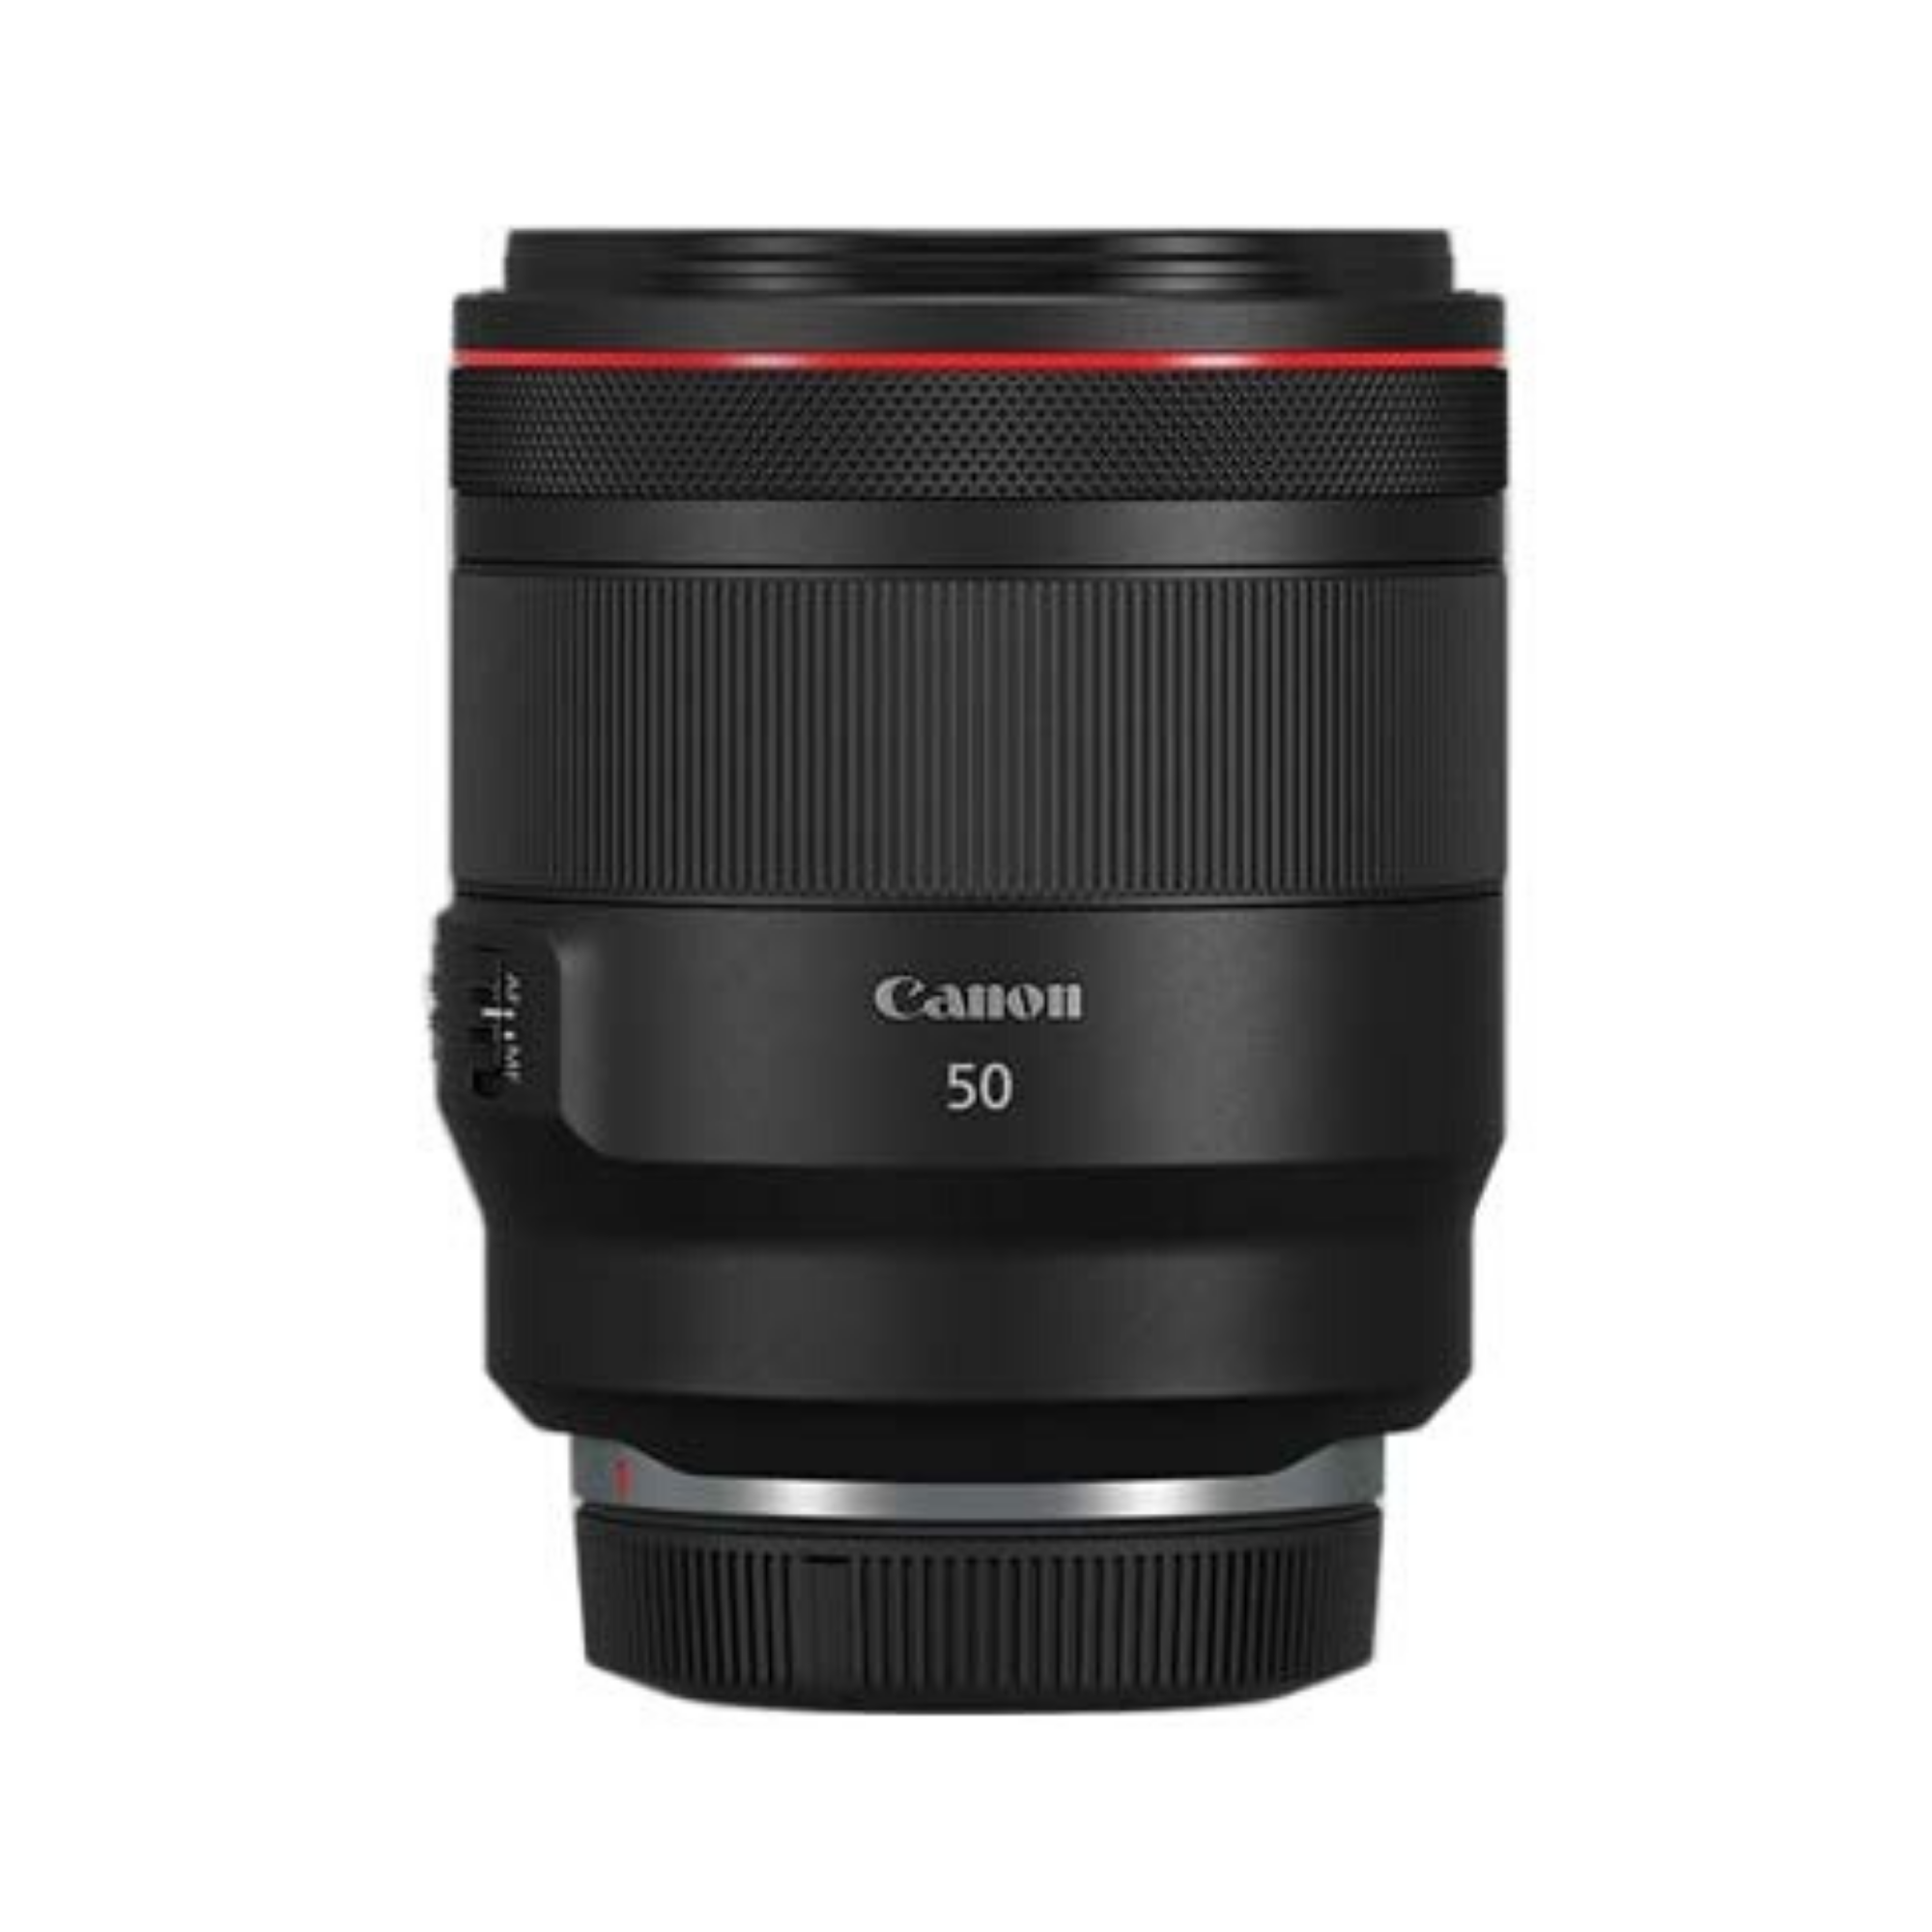 Canon RF 50mm F1.2 L USM Full Frame Lens for EOS R RF Mirrorless